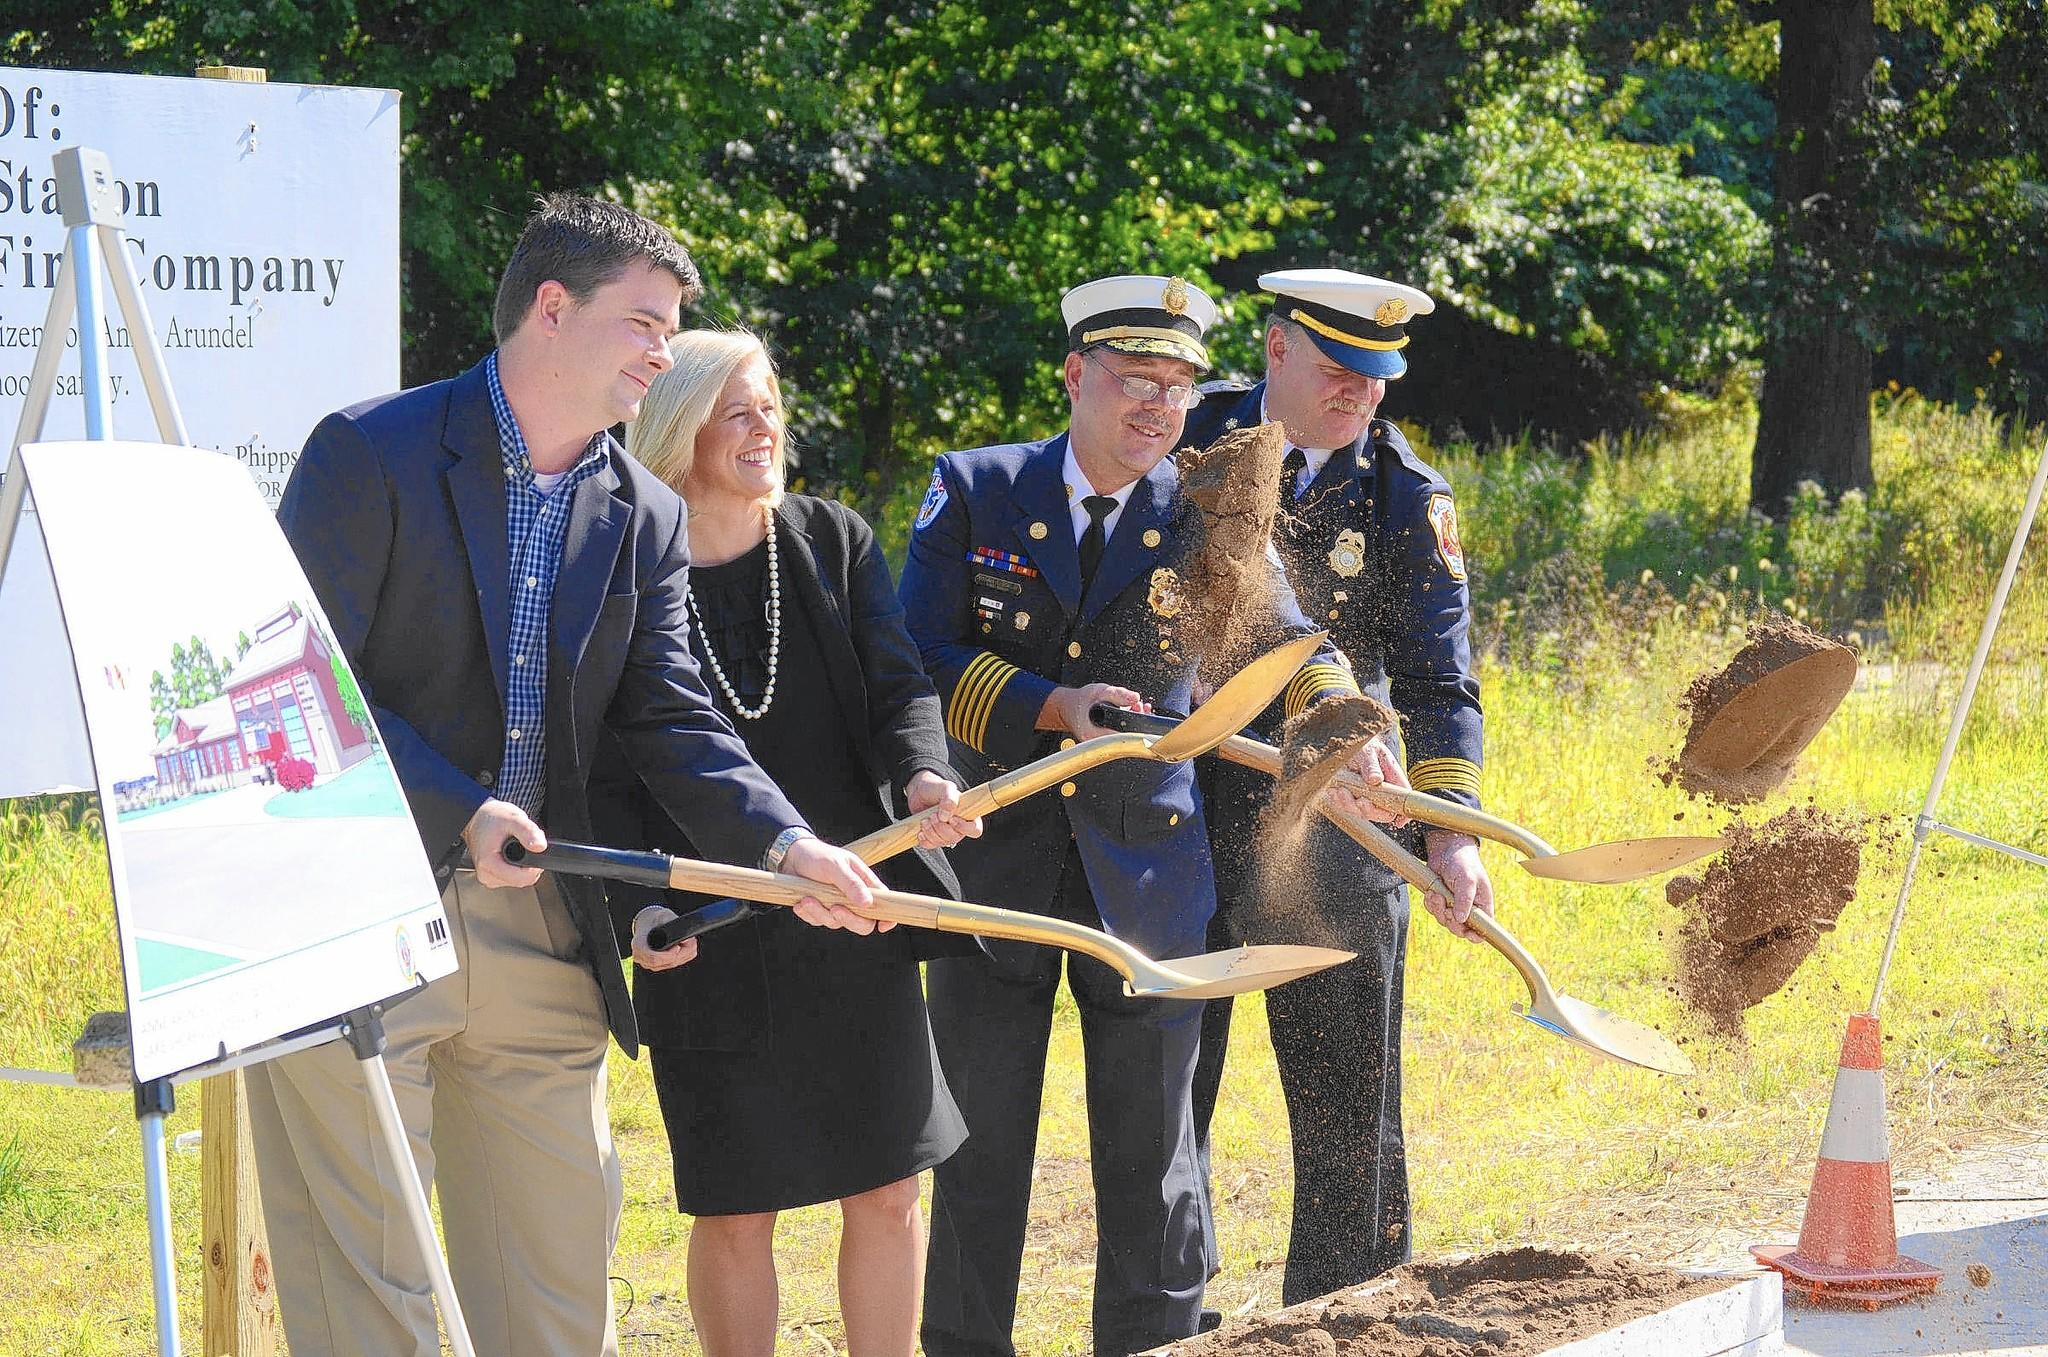 Anne Arundel County officials hold a ceremonial groundbreaking at the future site of a fire station in the Lake Shore community of Pasadena on Tuesday including, from left, County Councilman Derek Fink, County Executive Laura Neuman, county Fire Chief Michael Cox and Lake Shore Volunteer Fire Company Chief Timothy Hall.